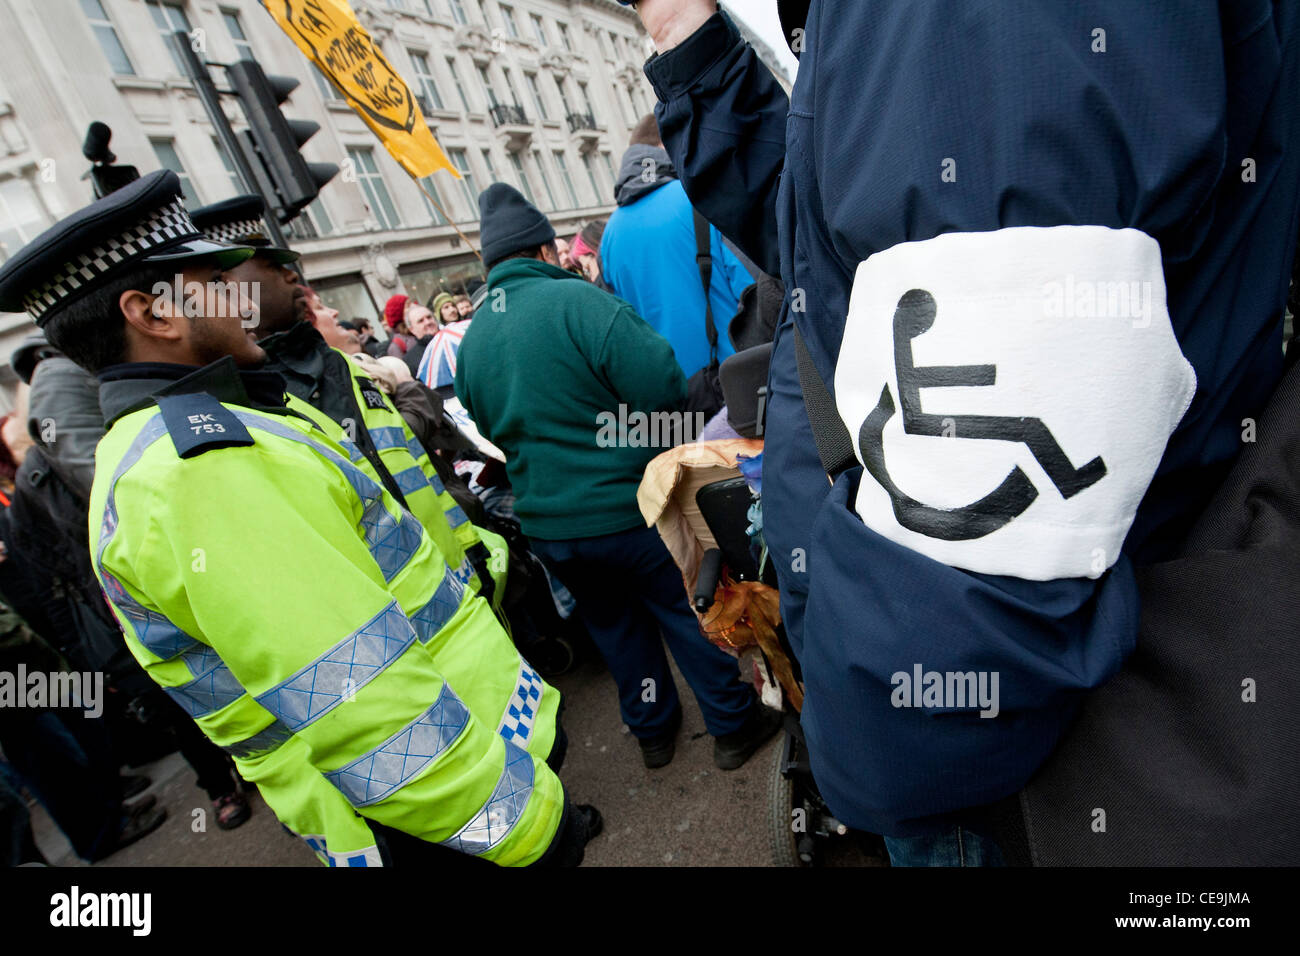 UK Uncut joins forces with a group of disabled, sick and elderly people to engage in an act of civil disobedience. - Stock Image